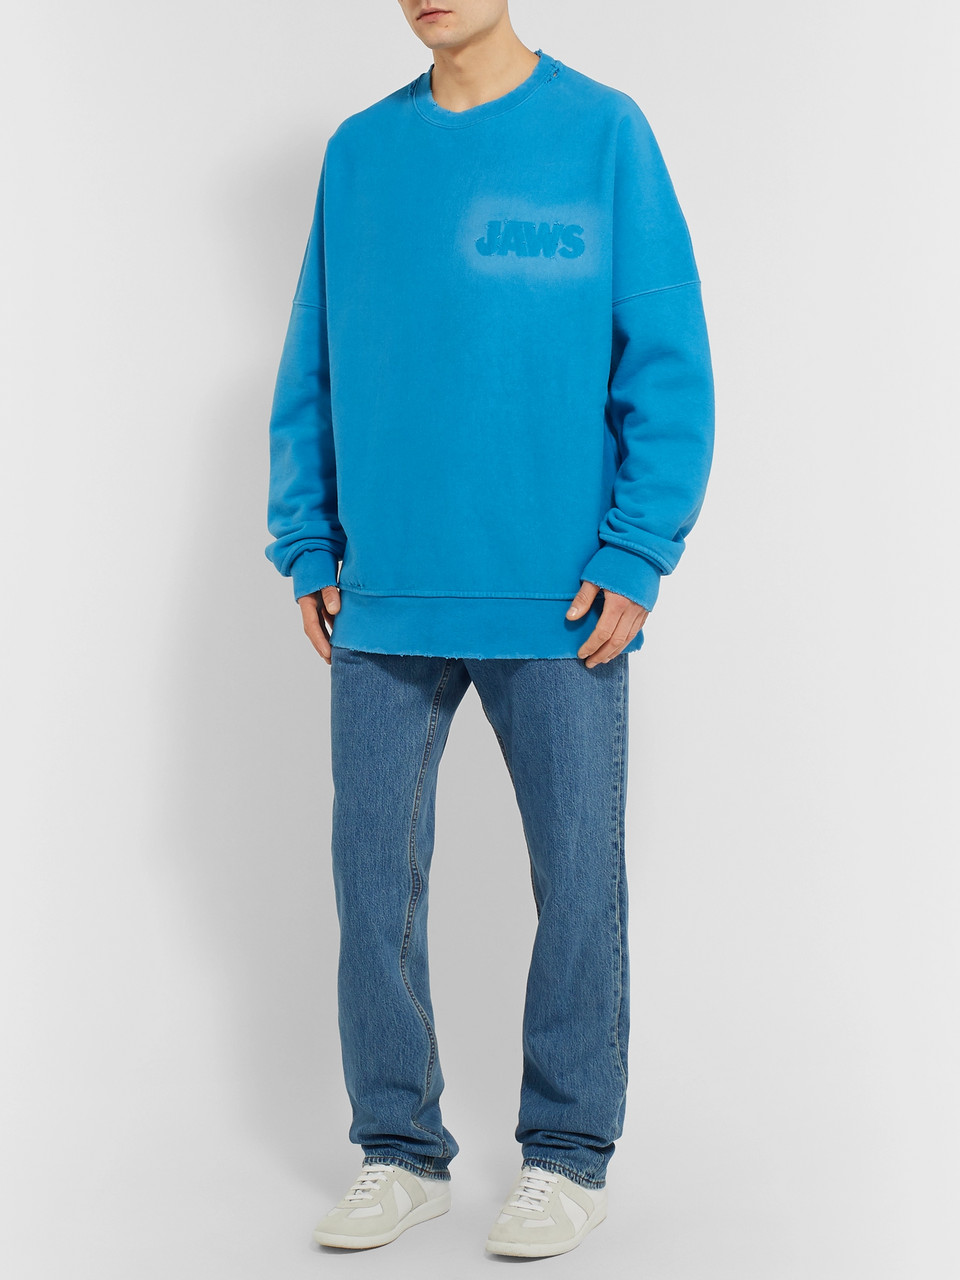 CALVIN KLEIN 205W39NYC Jaws Oversized Distressed Loopback Cotton-Jersey Sweatshirt